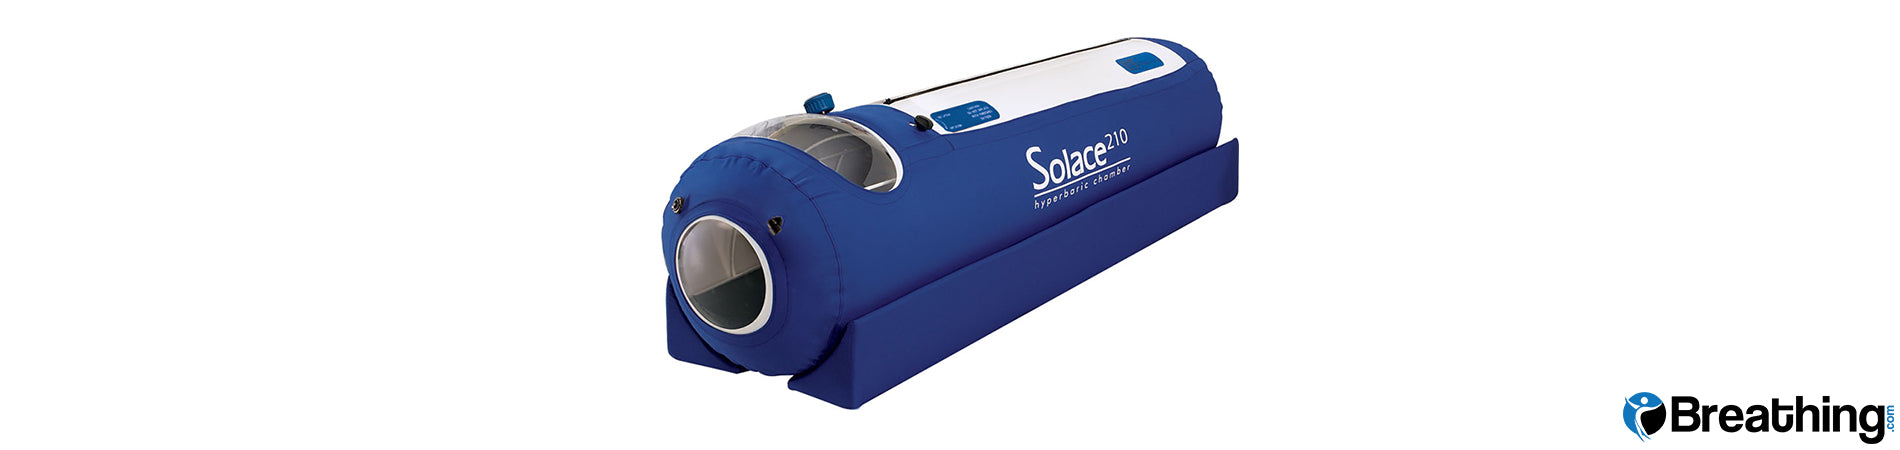 Mild Hyperbaric Chamber Overview